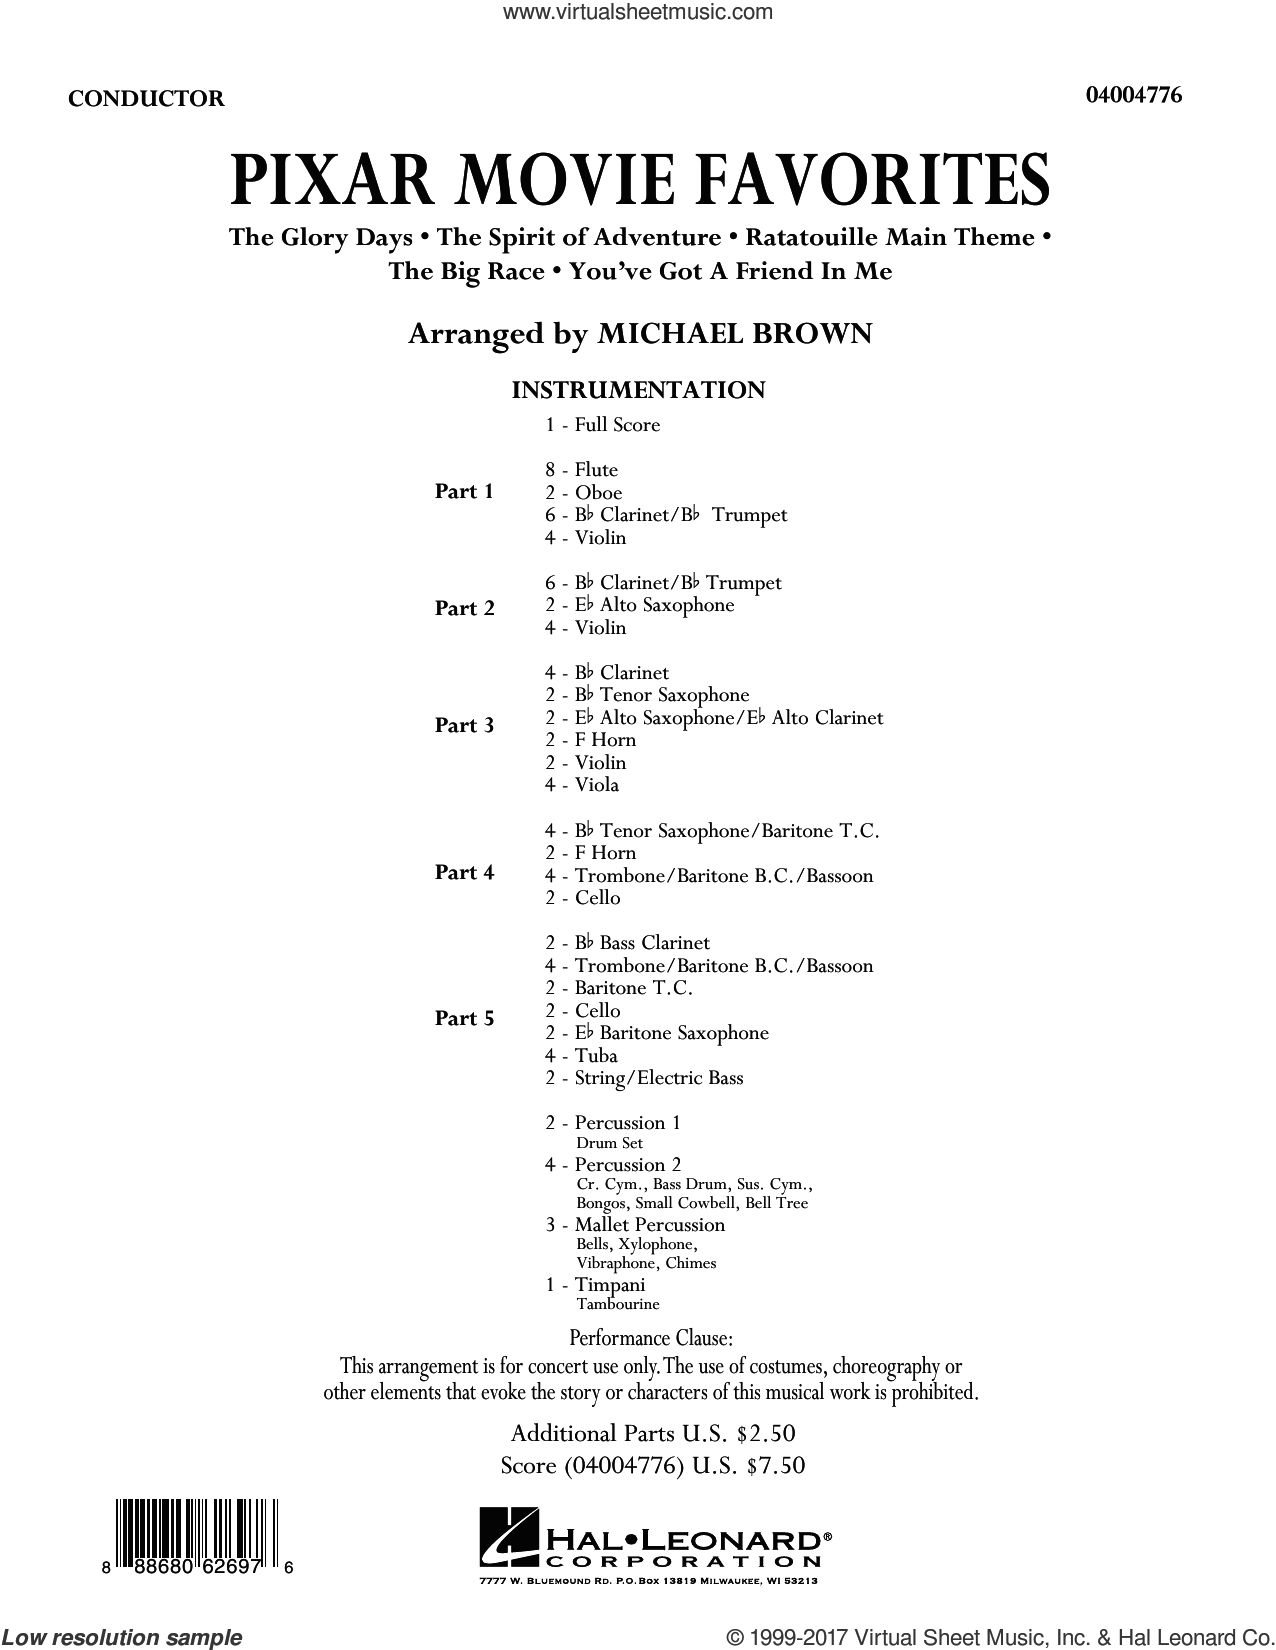 Brown - Pixar Movie Favorites sheet music (complete collection) for concert  band